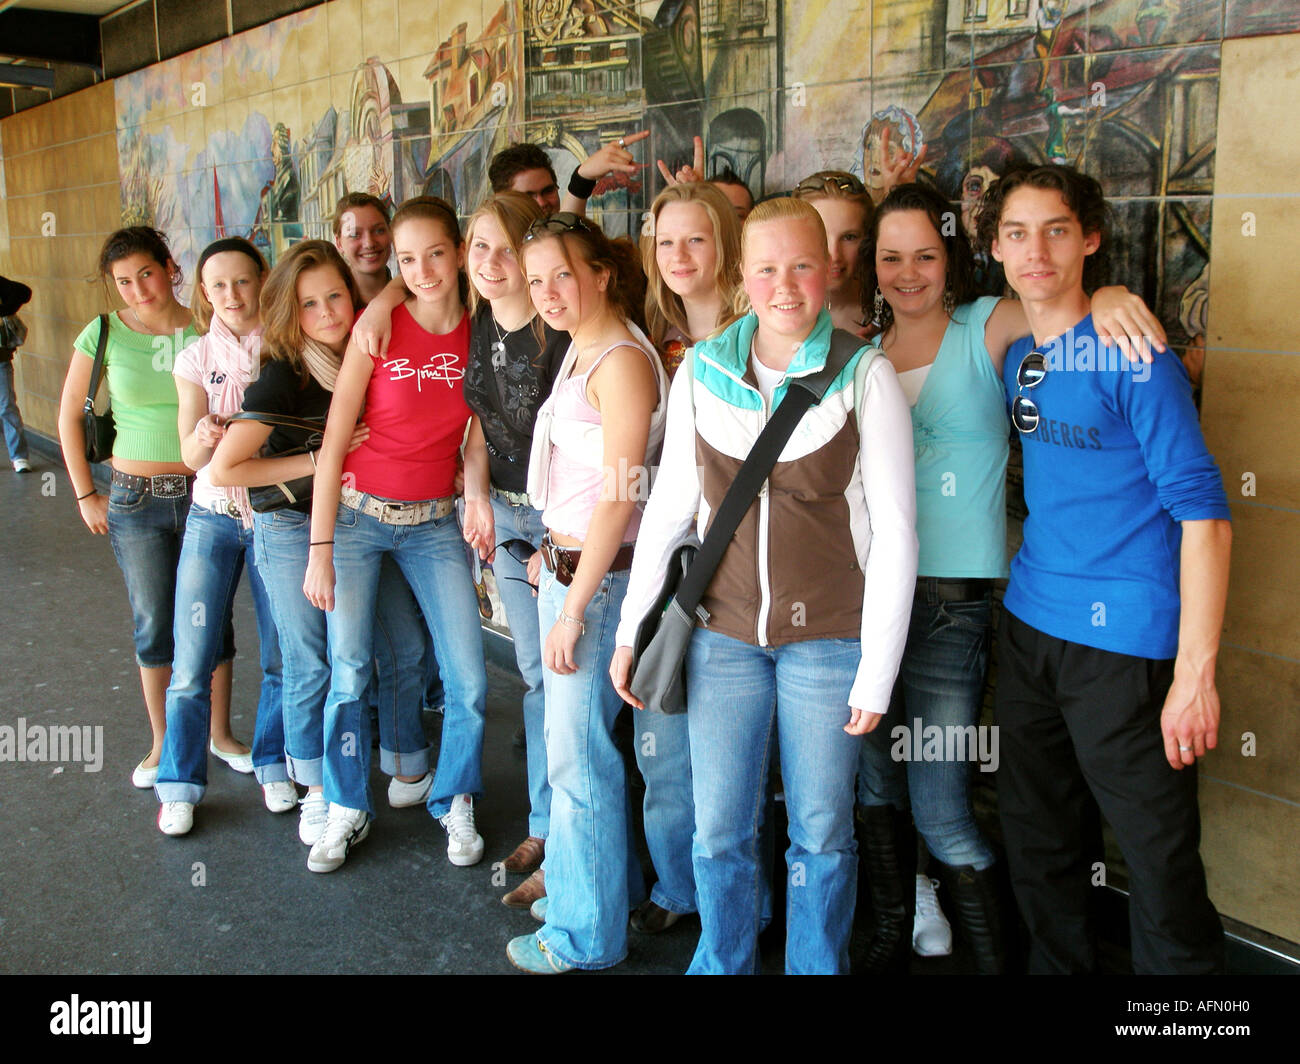 Group of students posing for the camera at Paris Bastille tube station Paris France - Stock Image